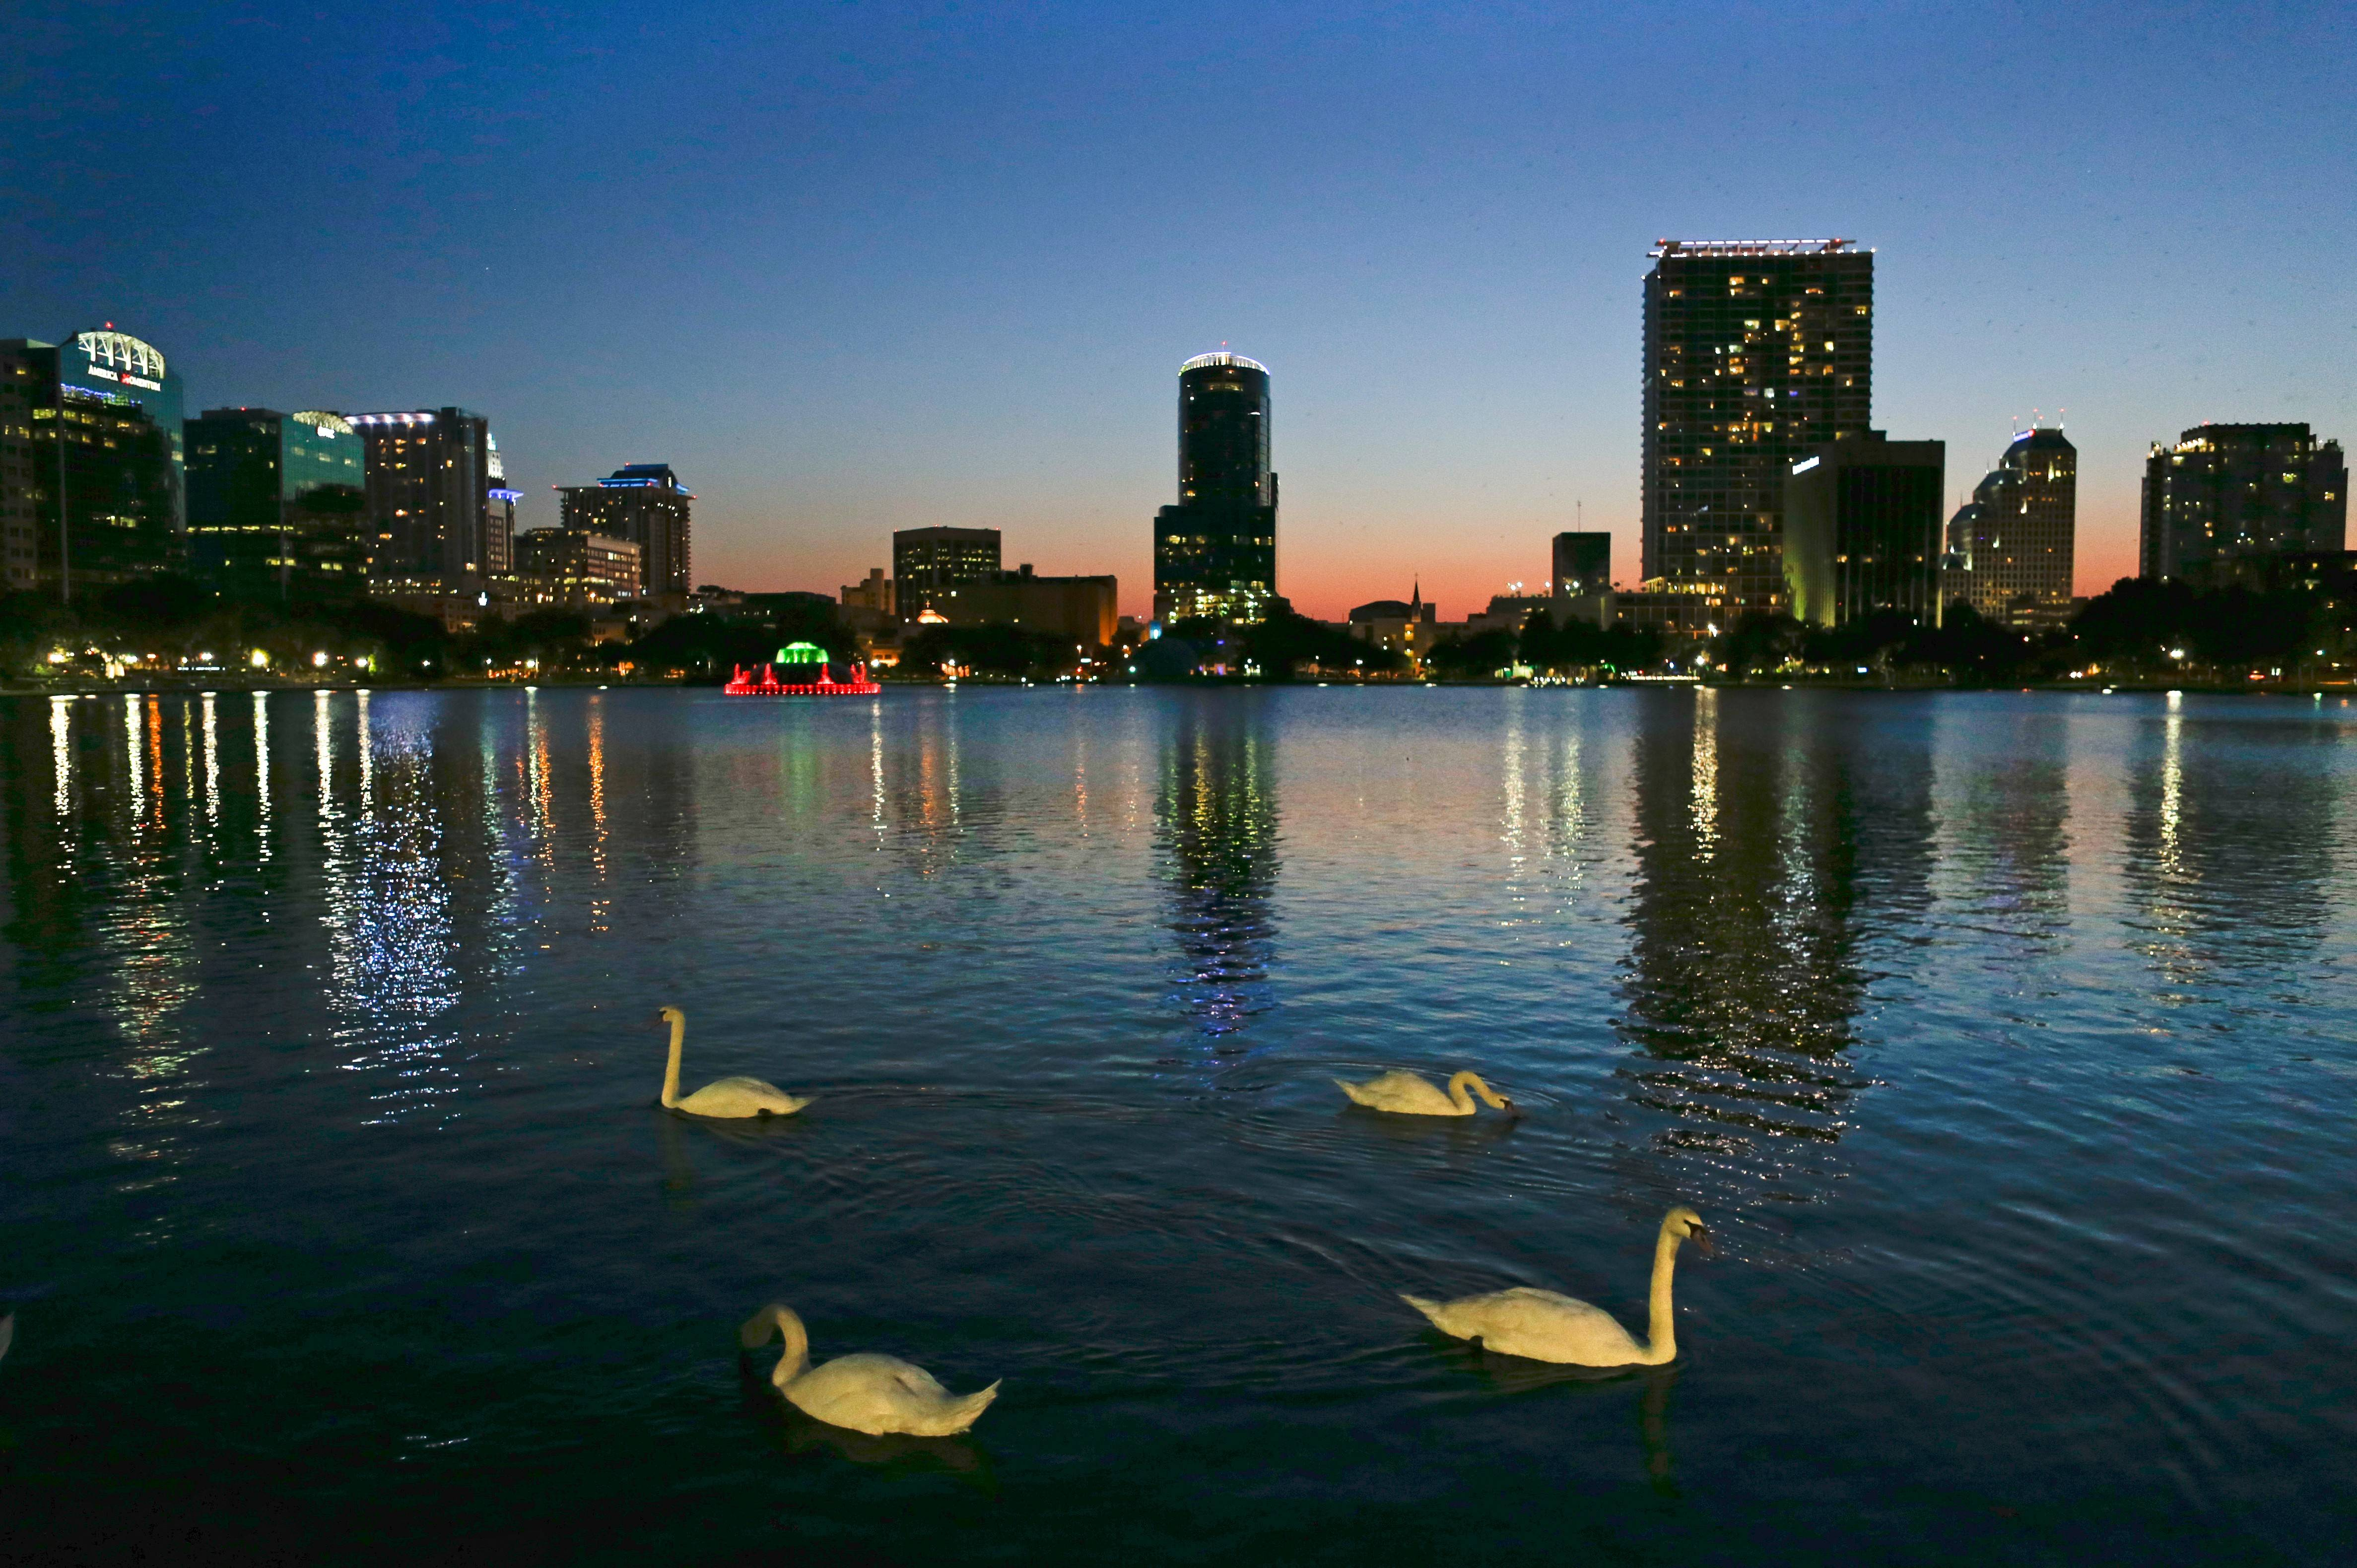 Swans swim in Lake Eola as the sun sets in Orlando, Fla. At the center of the lake is a five-decade-old, green, multitiered fountain that is the official icon of the city.